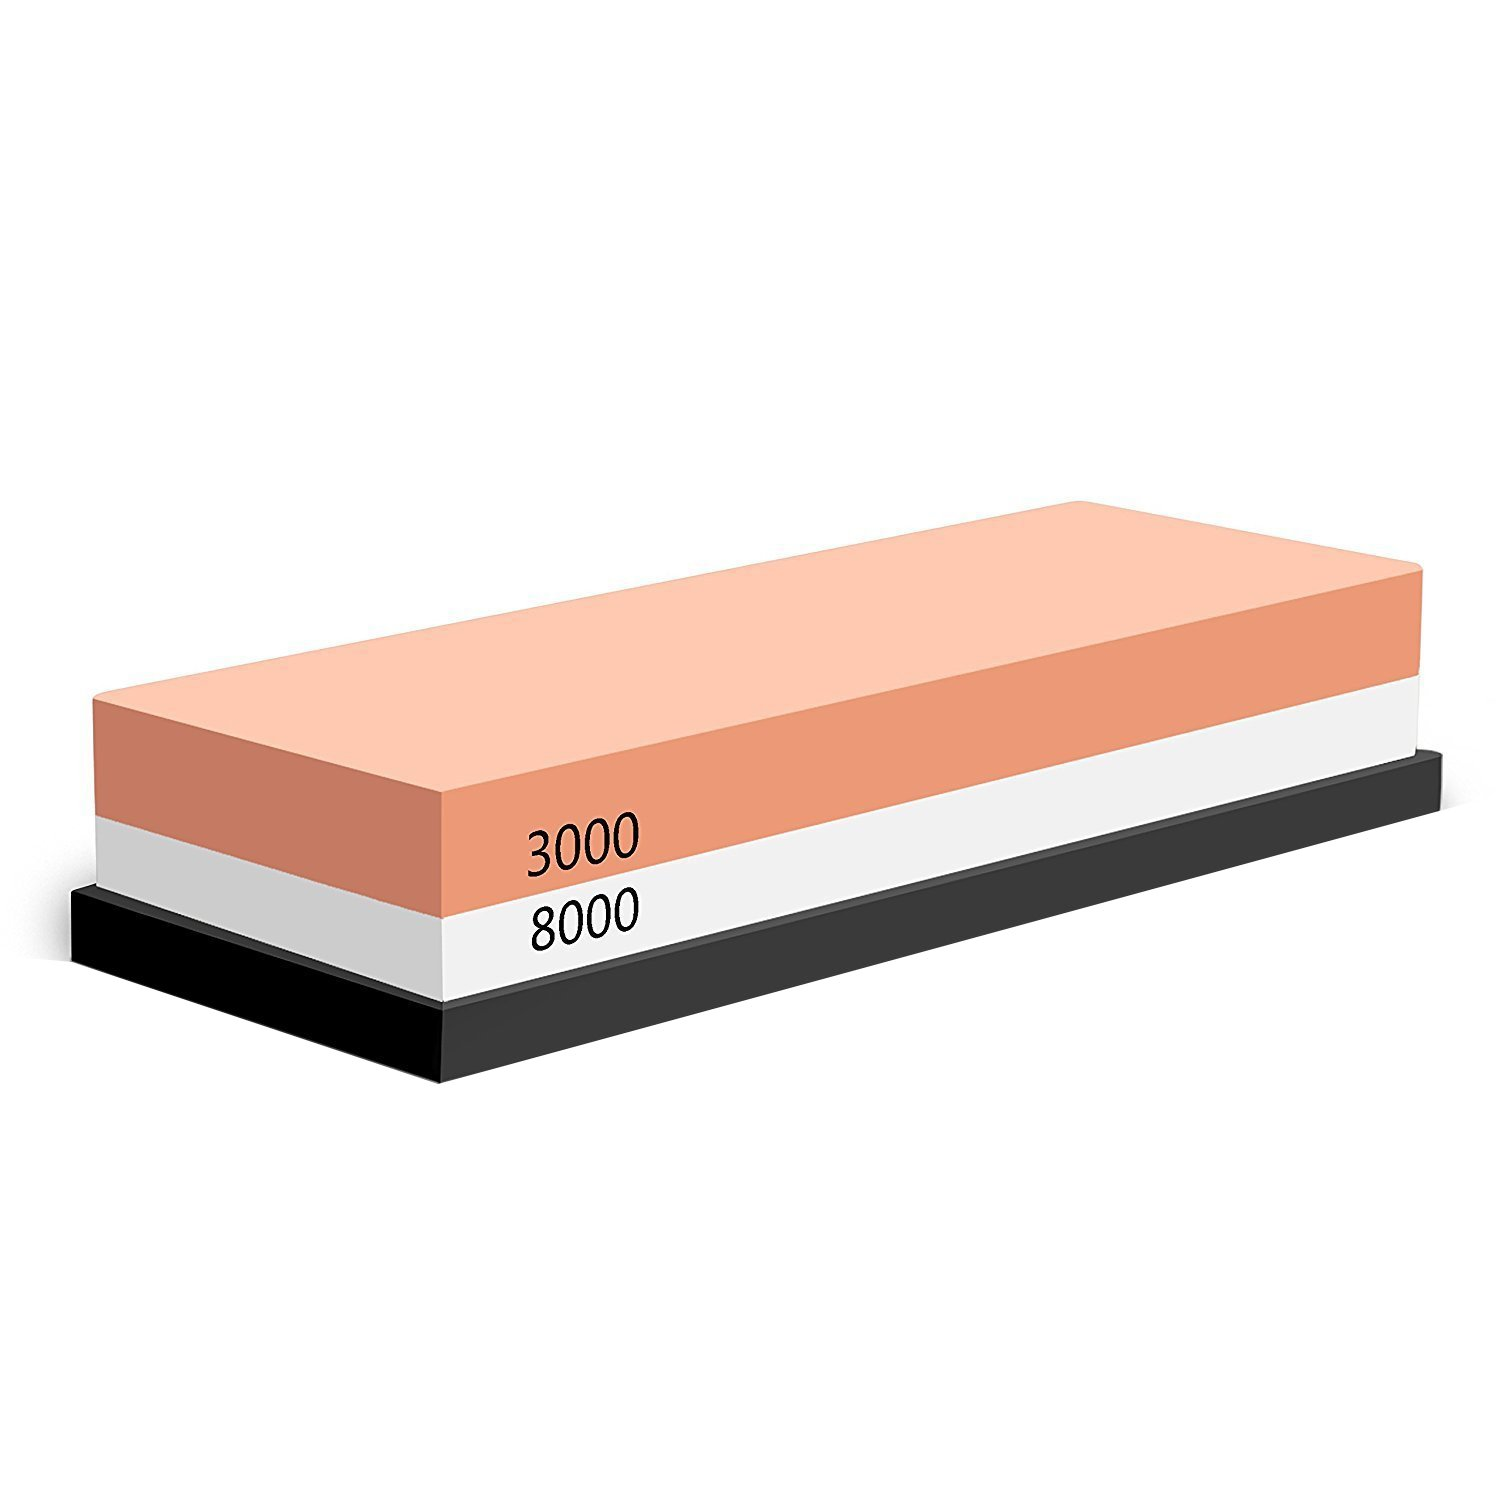 Whetstone POMEX Knife Sharpening Stone for Knives,2 Sided 3000/8000 Grit waterstone with Rubber Non-Slip Base